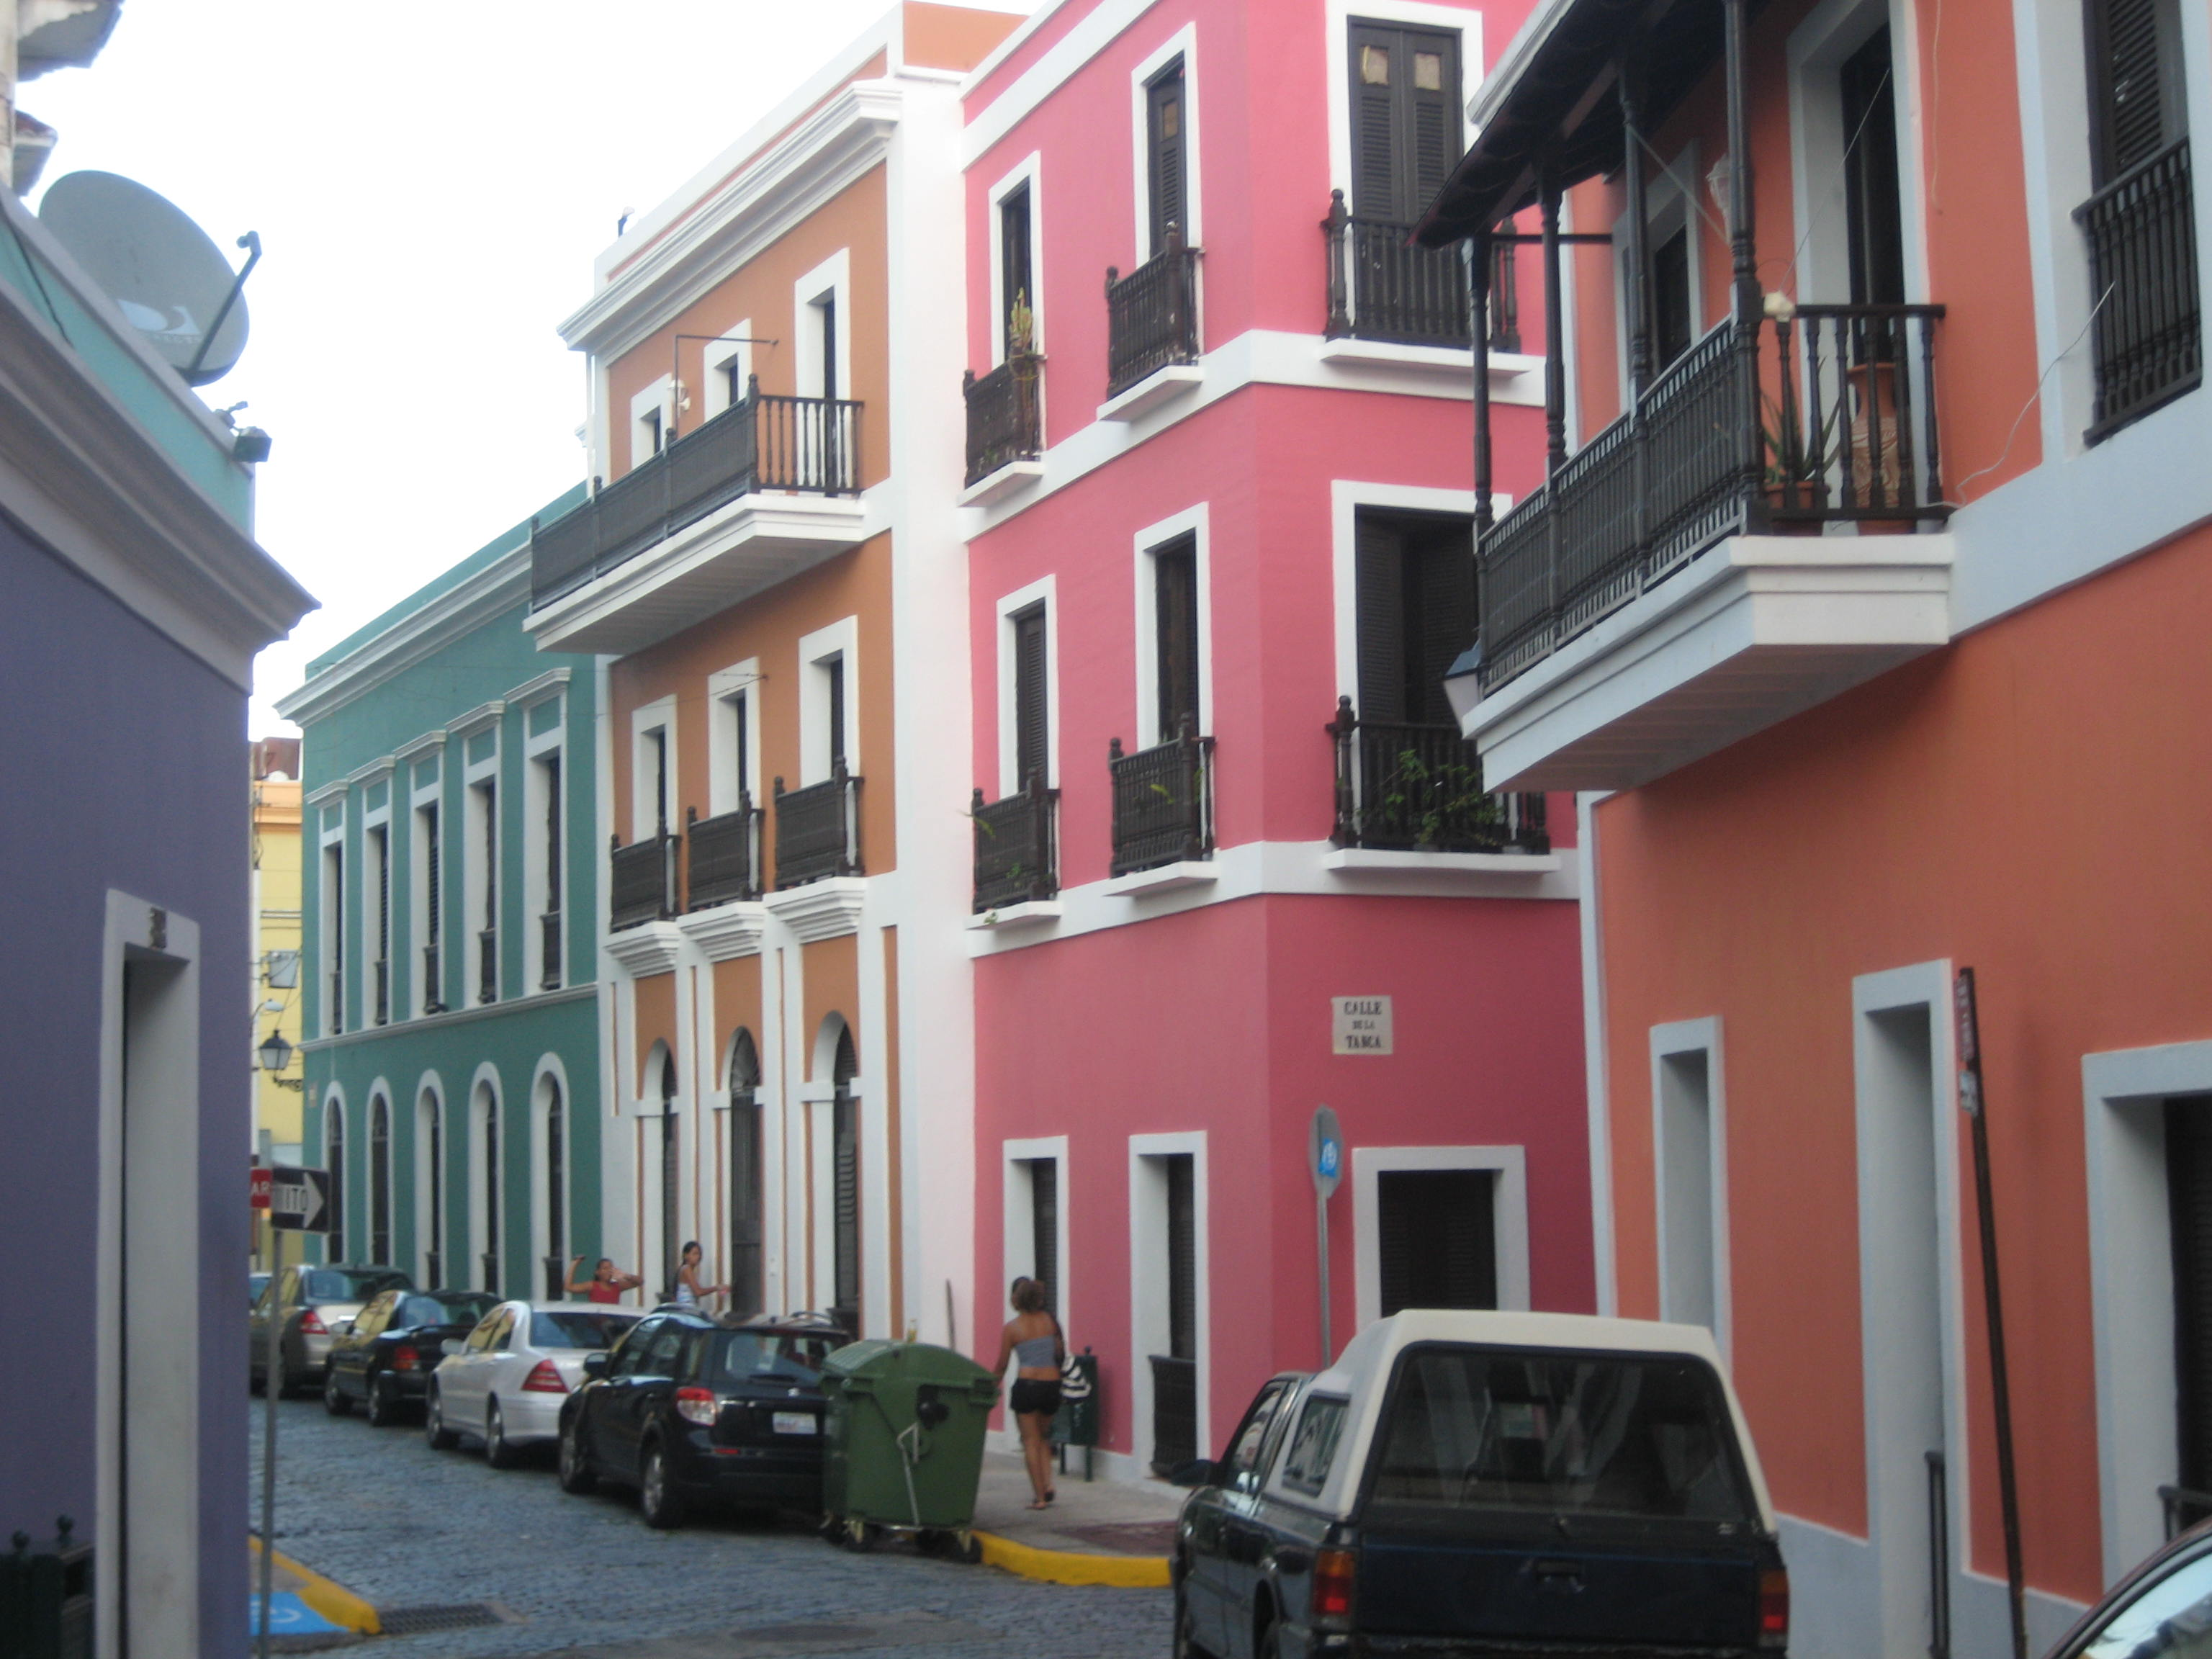 Houses in Old San Juan are painted bright pastel colors.